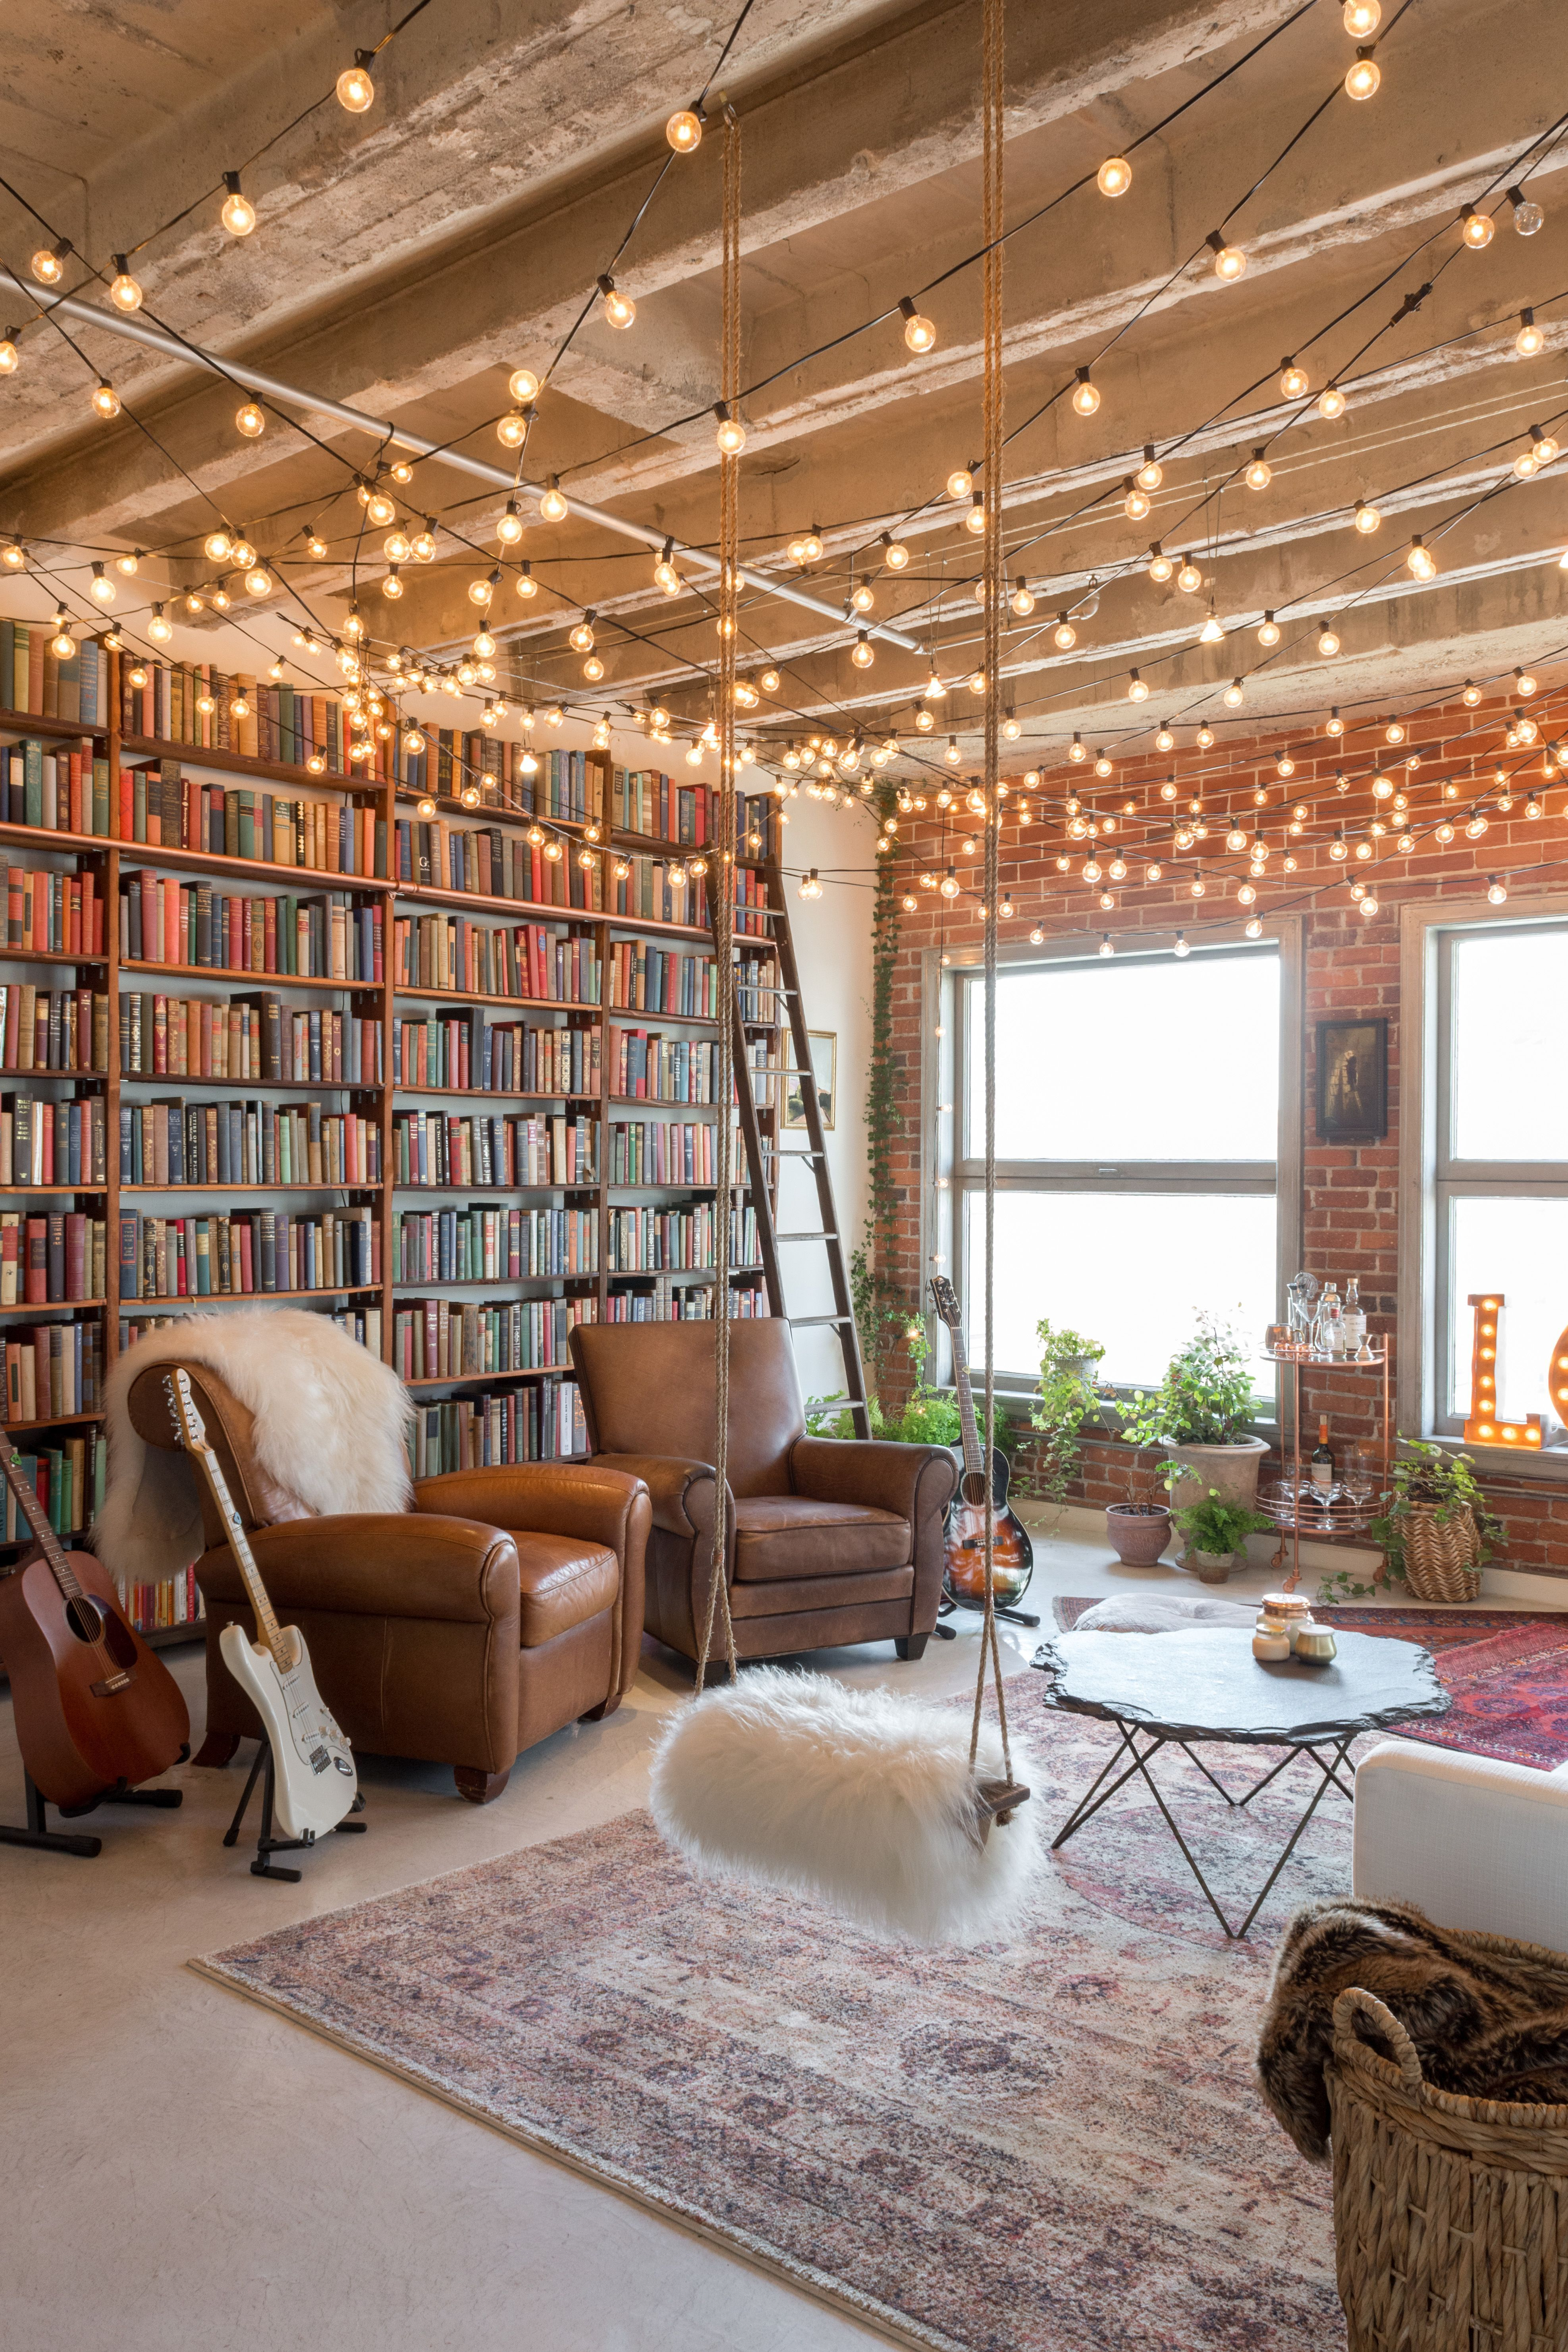 Photo of An Artsy Downtown Loft in LA Bursting with Books